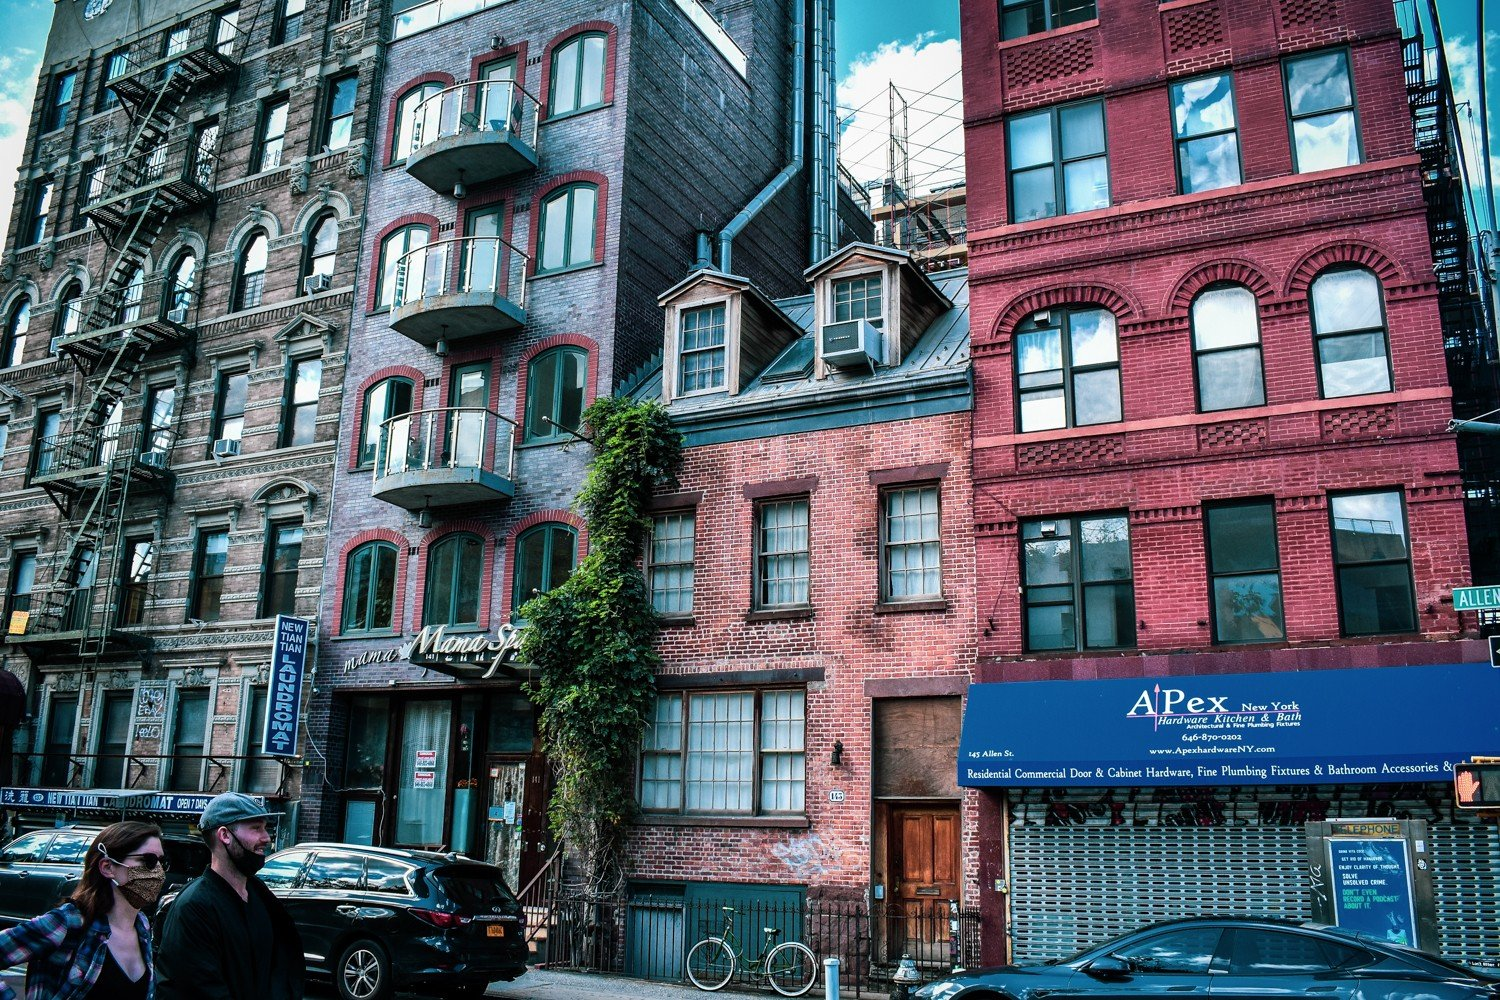 A view of 143 Allen Street; an old 1800s, small 3-story brick building nestled tightly between two other, much taller and newer buildings